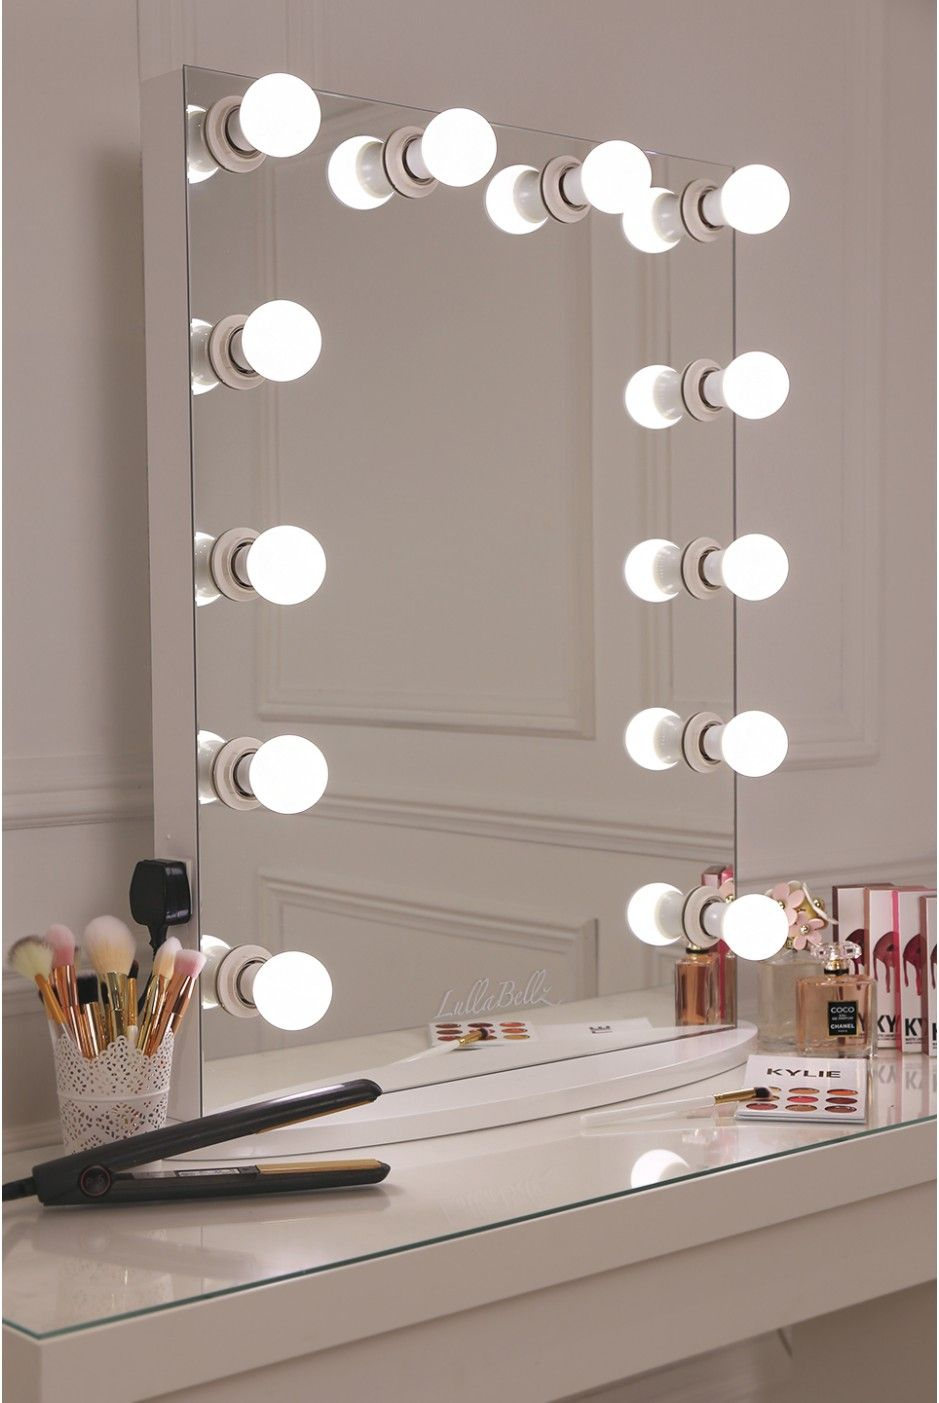 How To Make A Vanity Mirror With Lights Pleasing Hollywood Glow Vanity Mirror With Led Bulbs  Lullabellz  Anas